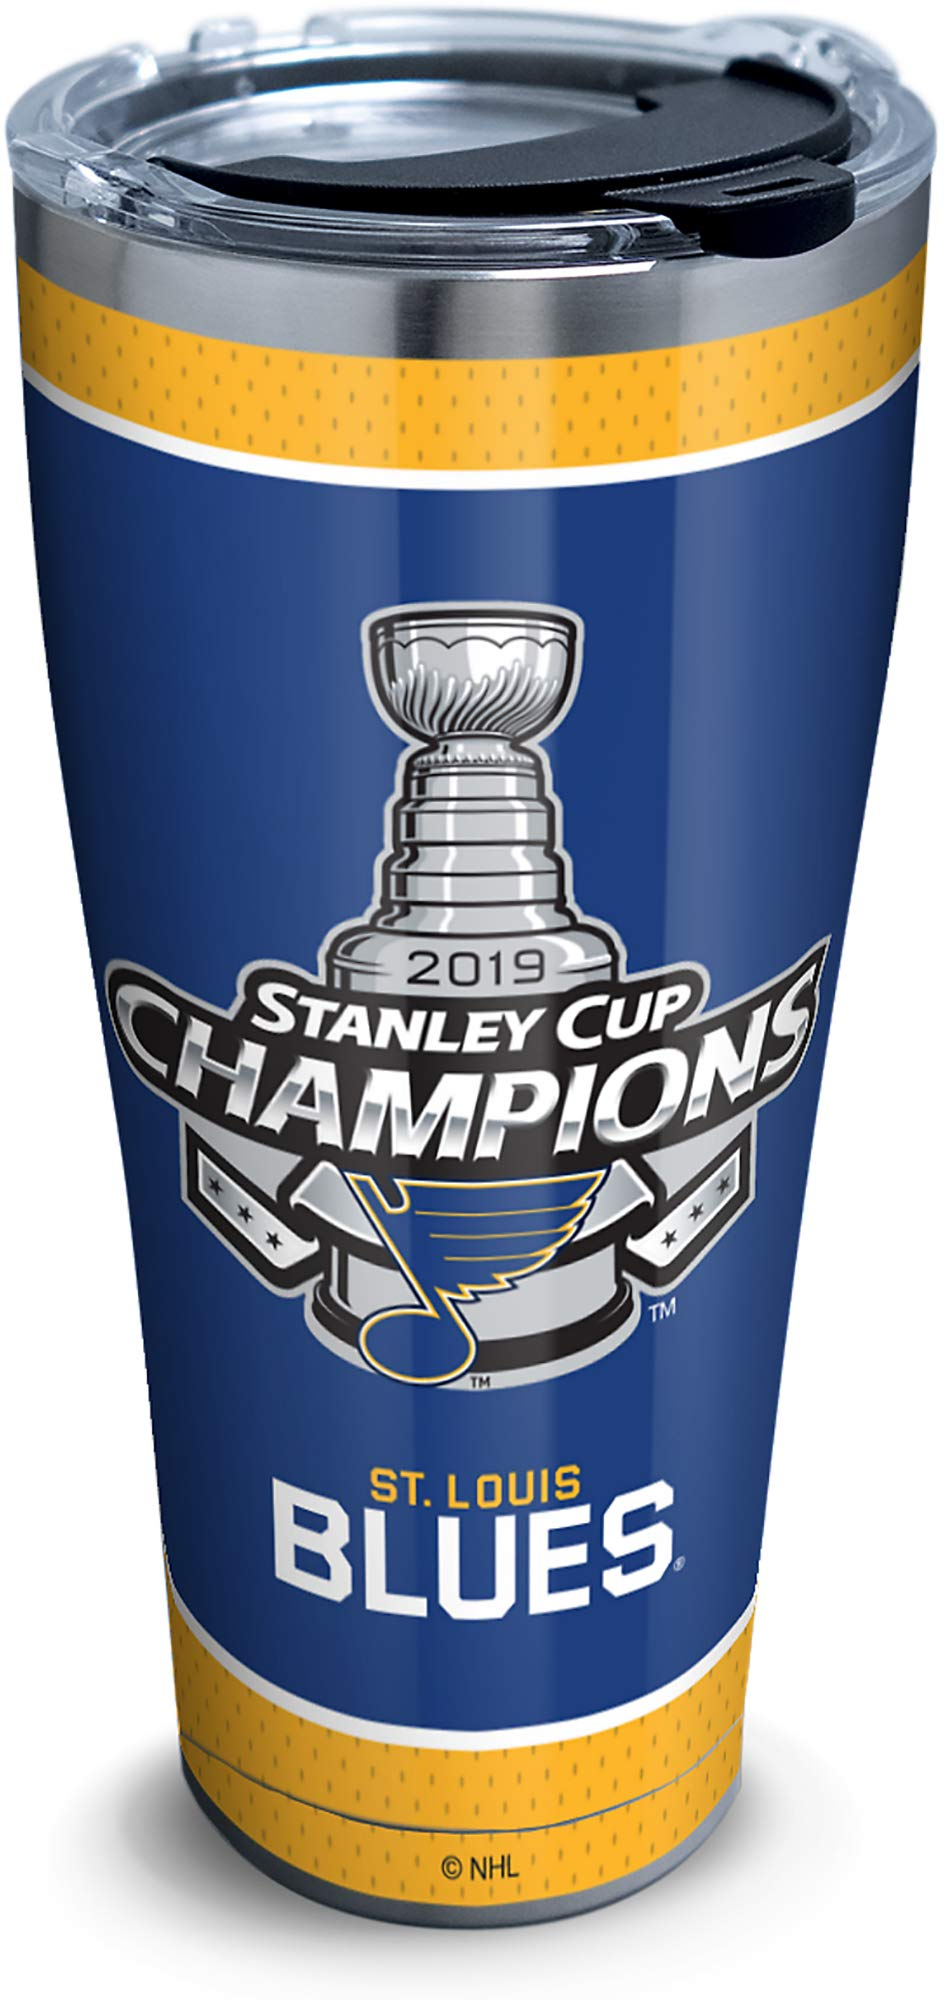 Tervis NHL St. Louis Blues 2019 Stanley Cup Champions Stainless Steel Insulated Tumbler with Clear & Black Hammer Lid, 30 oz, Silver - 1336028